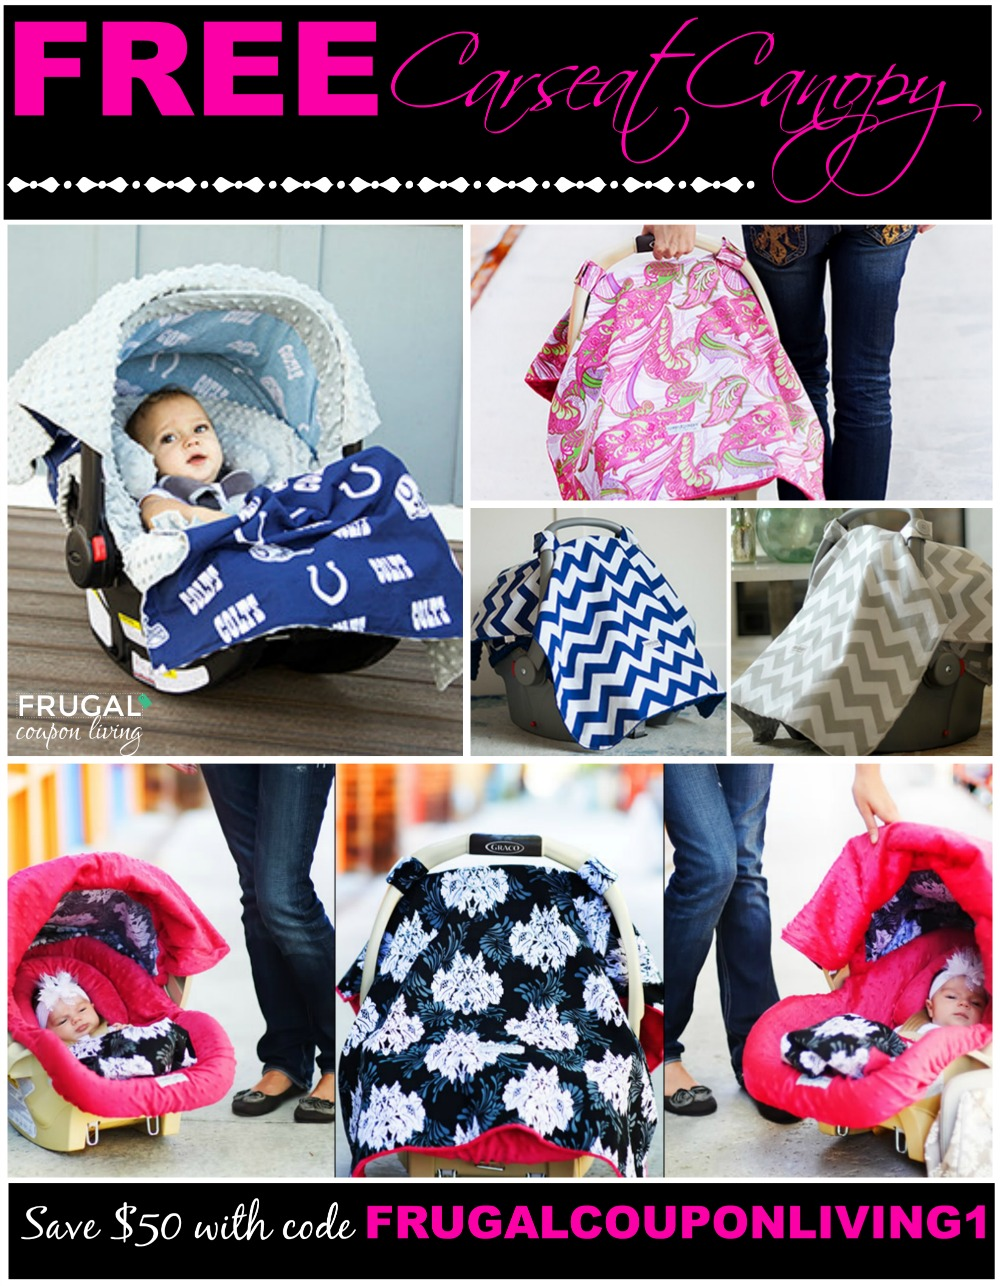 free-carseat-canopy-frugal-coupon-living-Collage